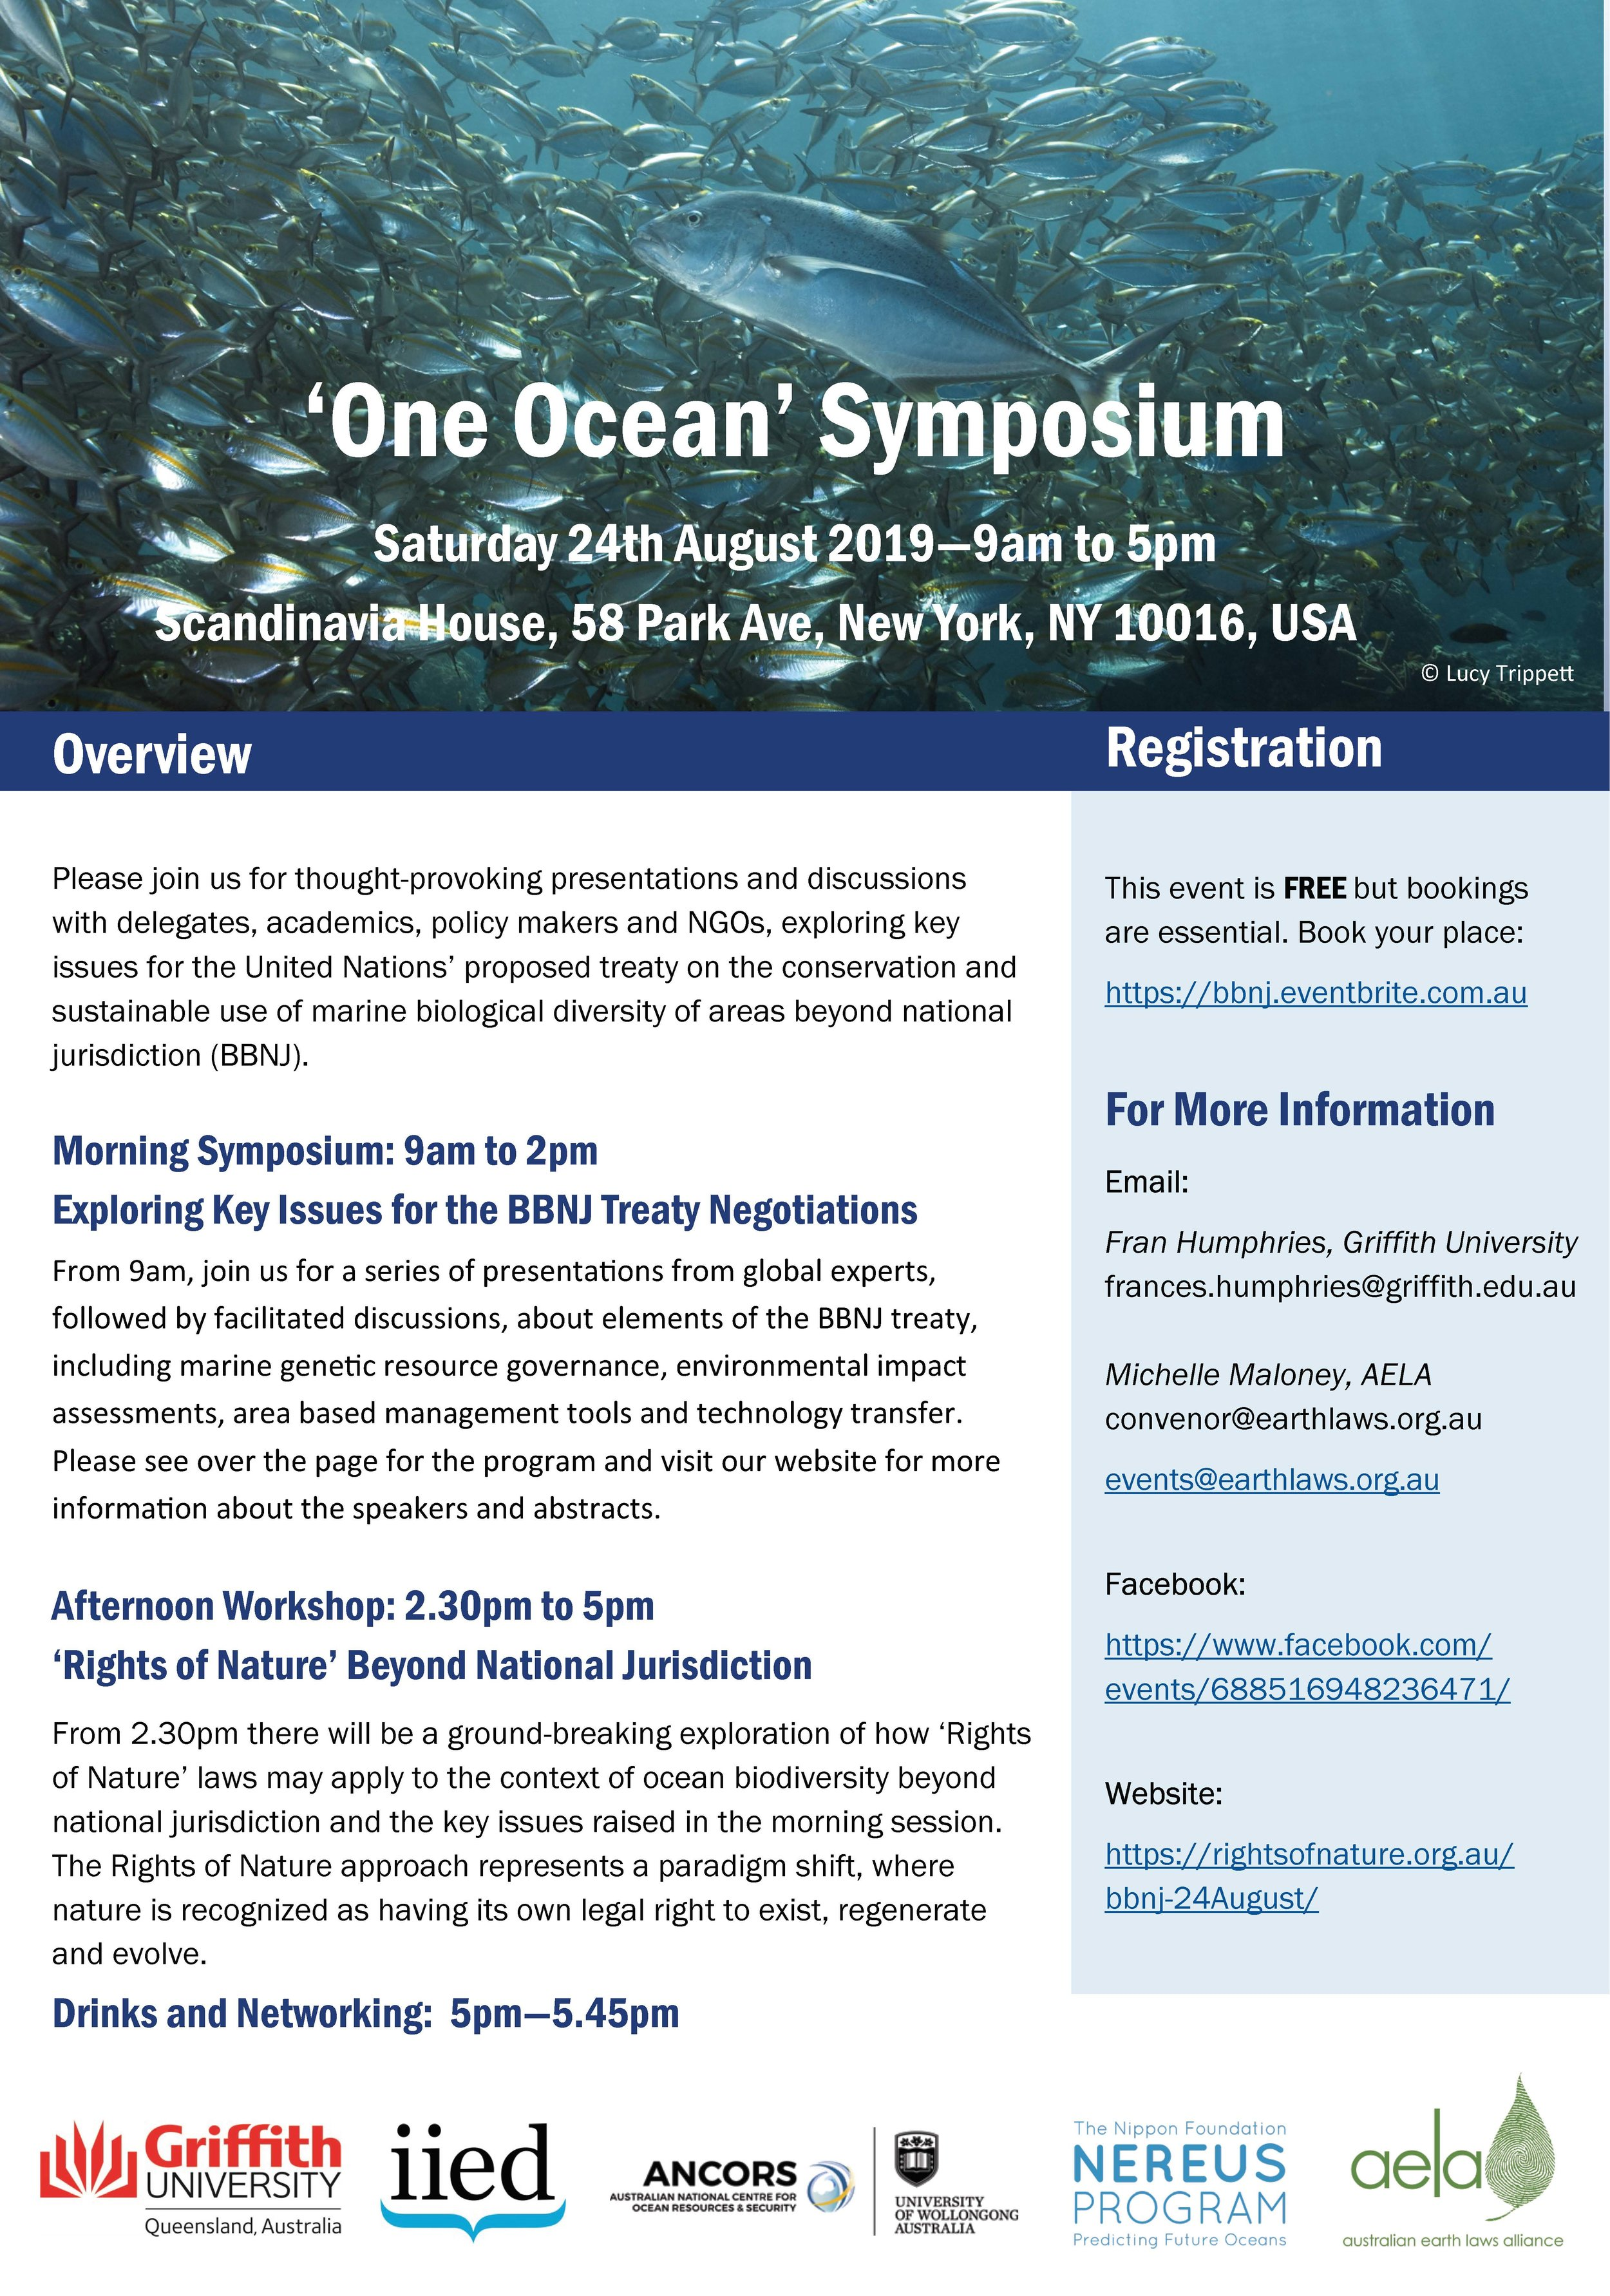 One Ocean Symposium 24 Aug - Flyer and Program_Page_1.jpg